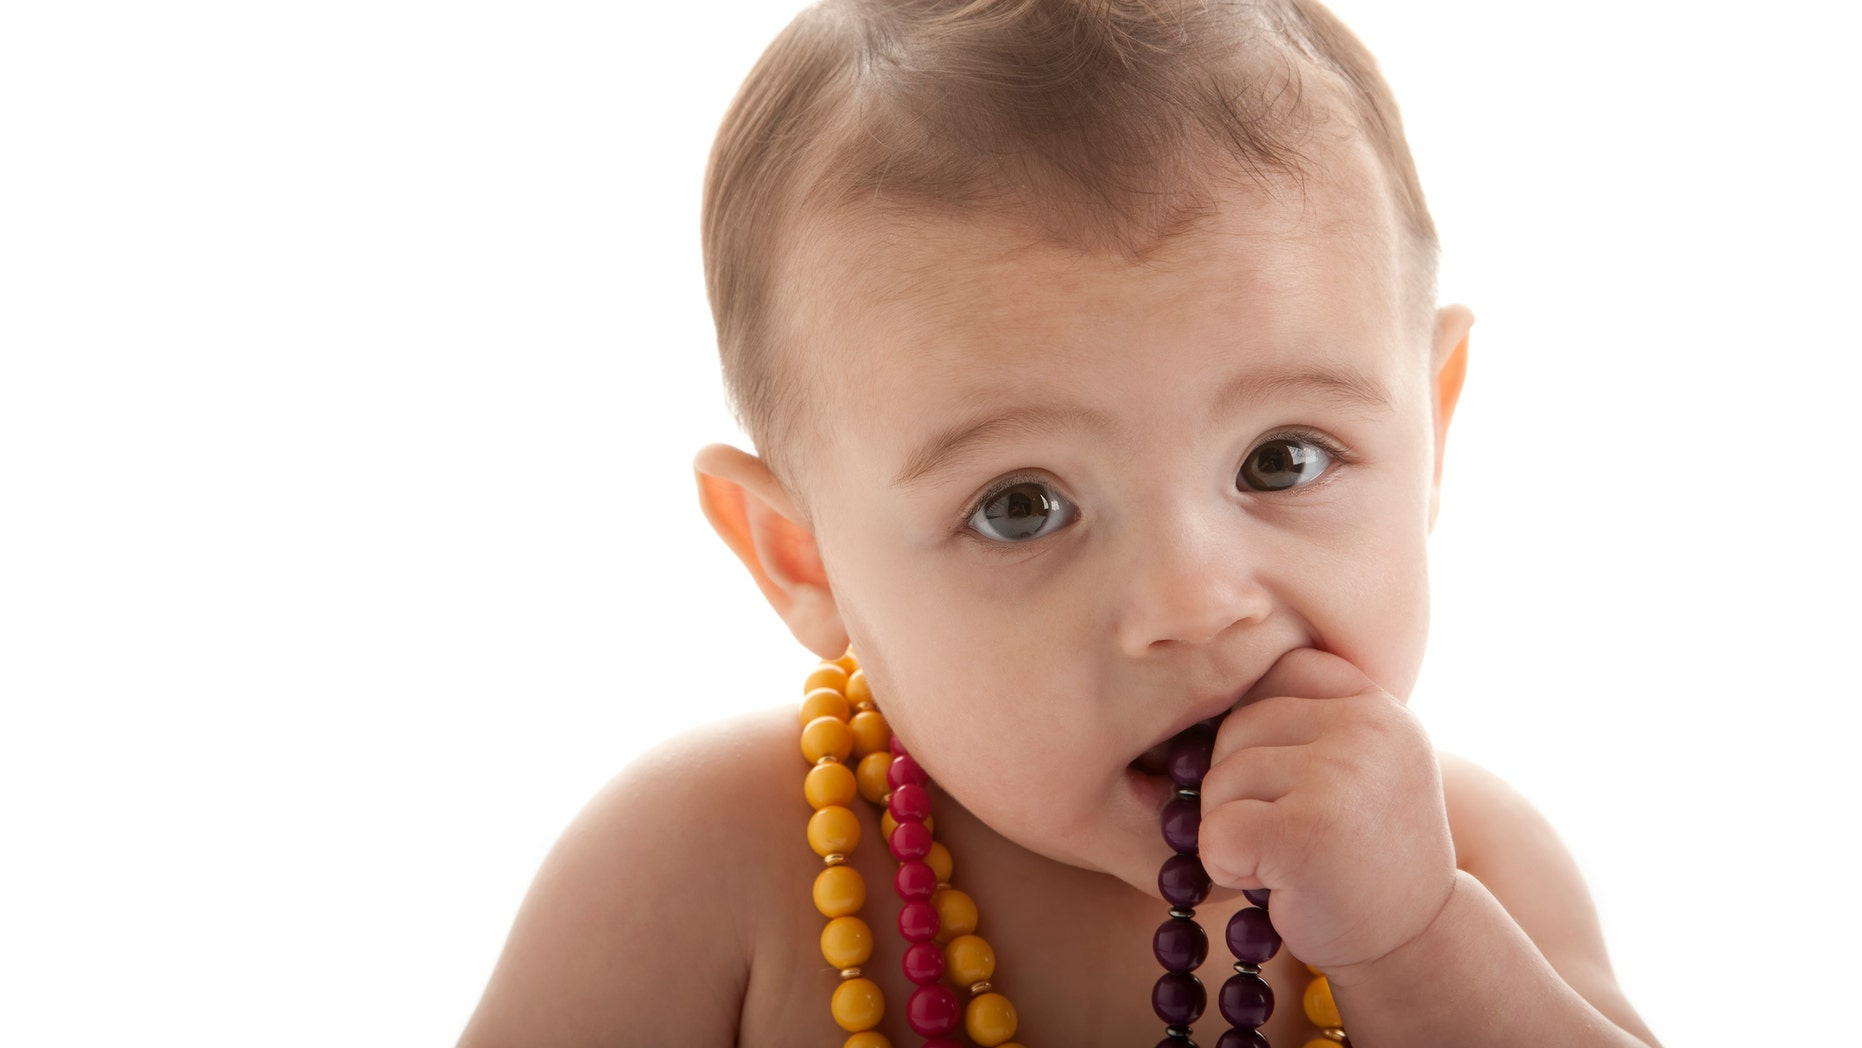 """The FDA said it received a report of an 18-month-old who was strangled to death by an amber teething necklace during a nap, and another concerning a 7-month-old who choked on the beads of a wooden teething bracelet while under parental supervision.<br data-cke-eol=""""1"""">"""